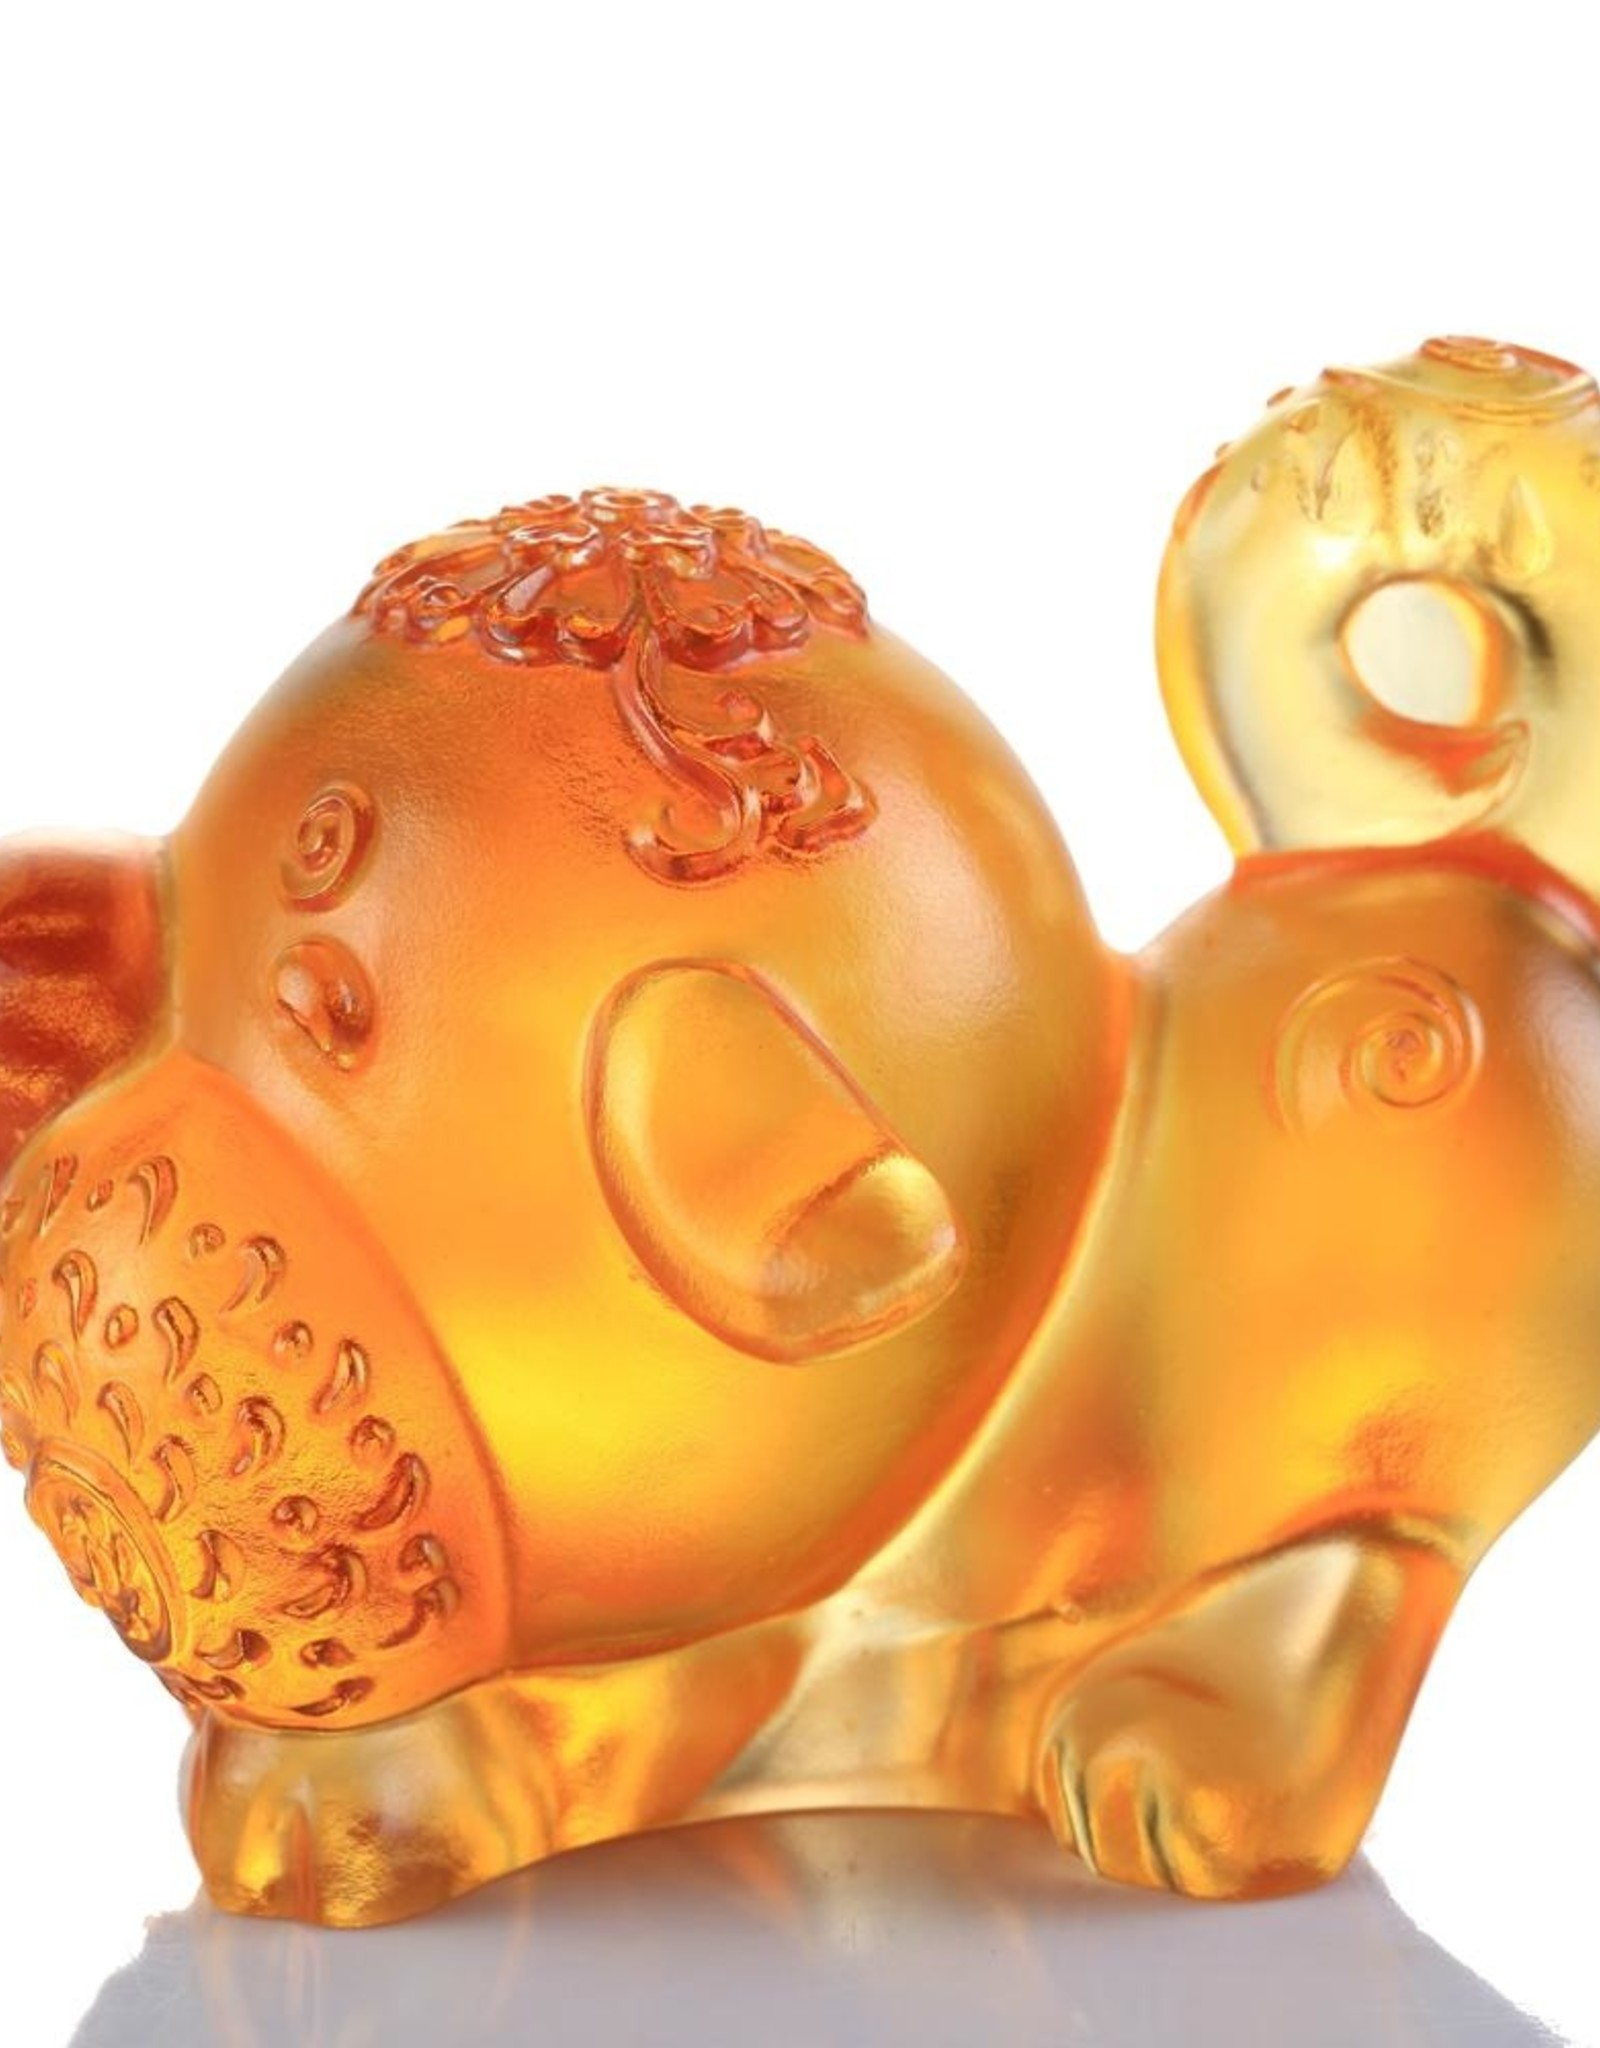 """LIULI Crystal Art Crystal Year of the Dog """"Prosperity Comes Along"""" Chinese Zodiac Figurine in Dark Amber/Light Amber (Limited Edition)"""